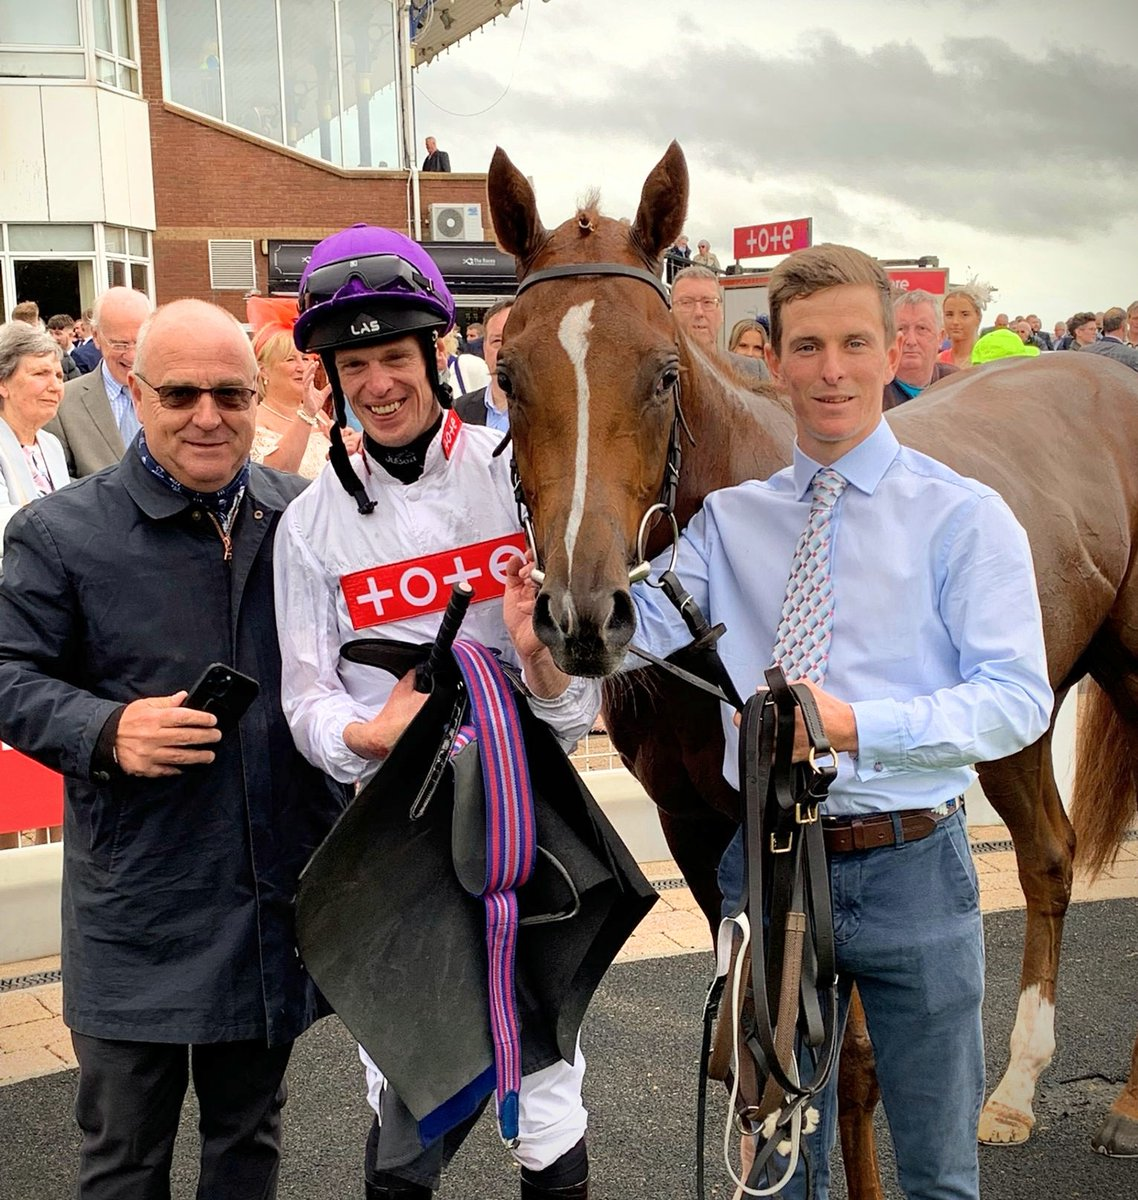 Scintillating 💥!! STRAITS OF MOYLE streaks clear of his field @ayrracecourse ⚪🟣. Brilliant team effort to get this boy to where he is now 👏! Many congratulations to owners @CoolSilkRacing, jockey @bazmchugh, and winning groom @E_Cagney ⭐⭐⭐  #WINNER  #theonlywayisup